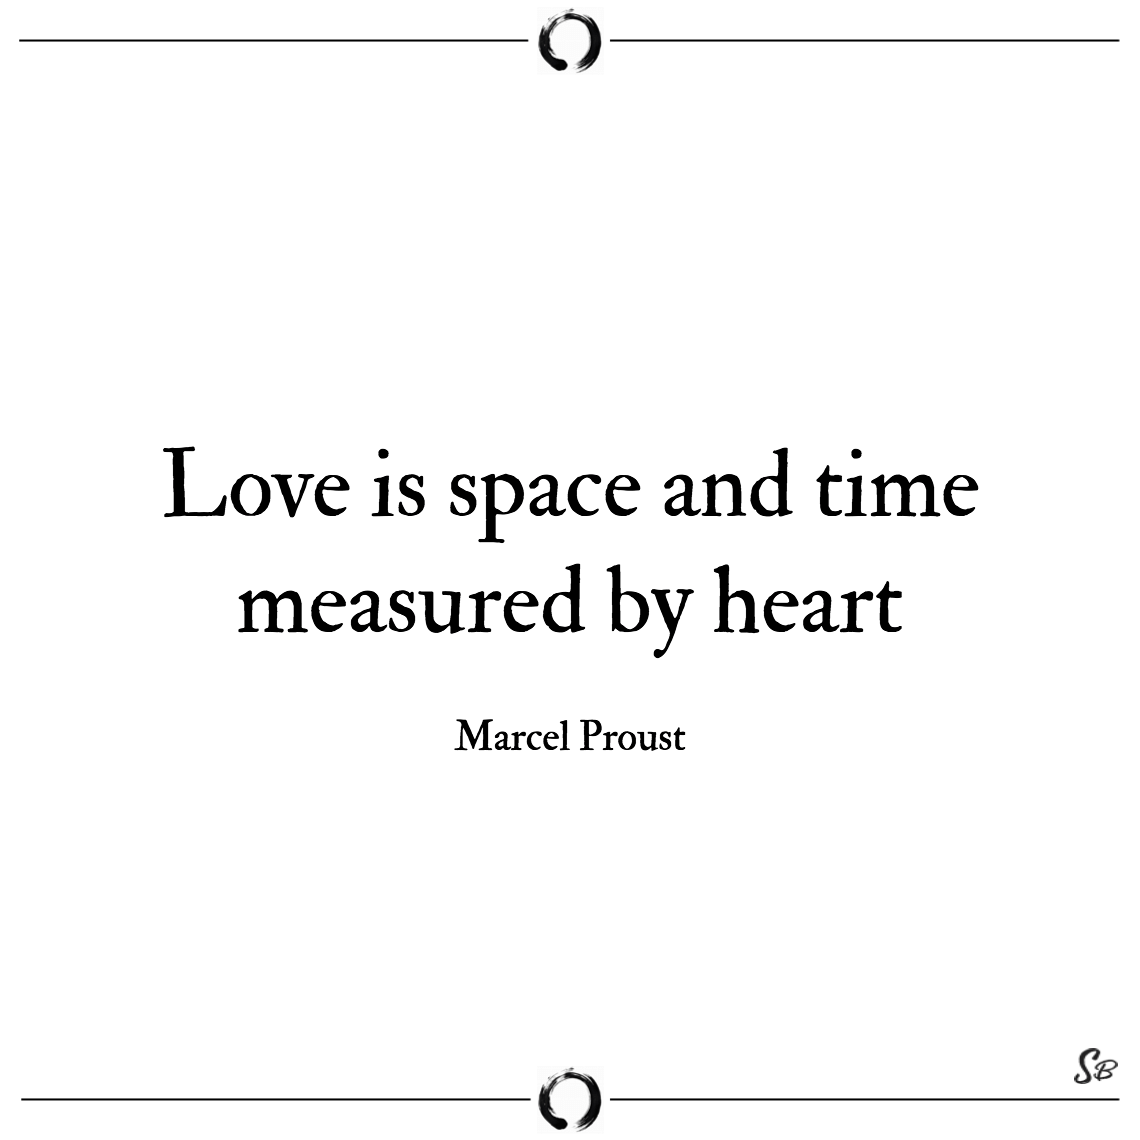 Love is space and time measured by heart marcel proust